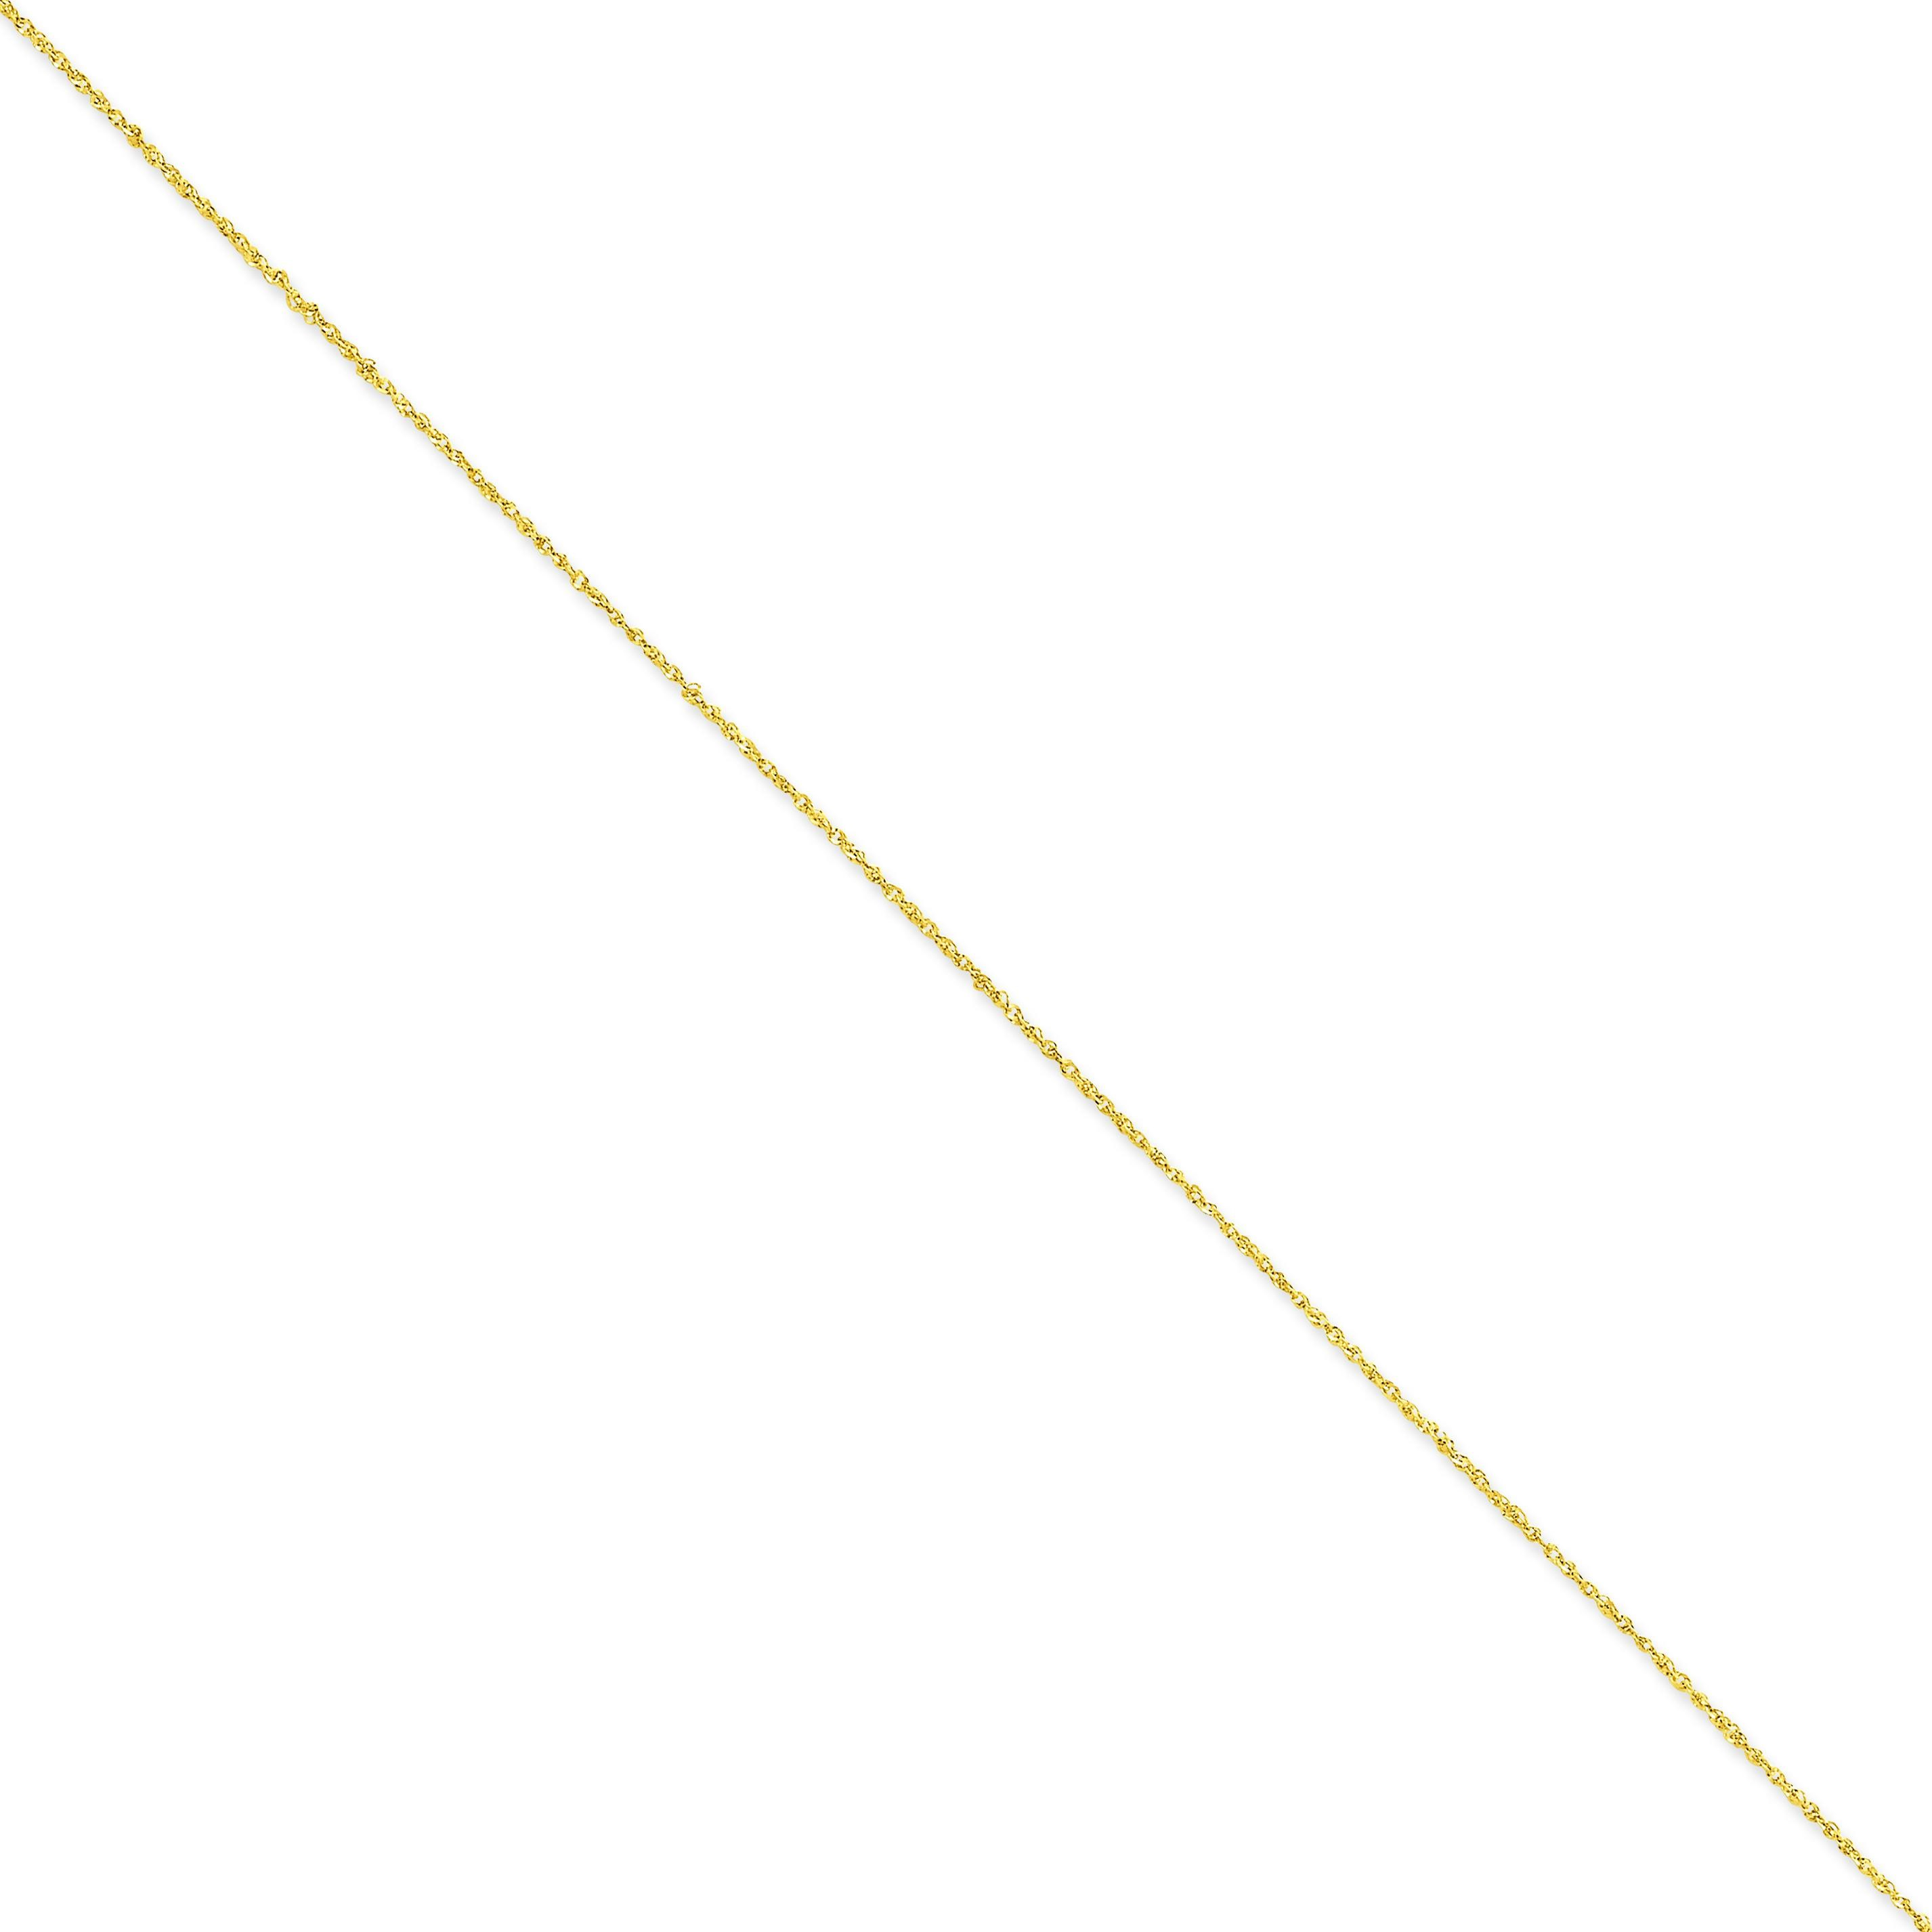 14k Yellow Gold 14 inch 1.10 mm  Ropa Choker Necklace